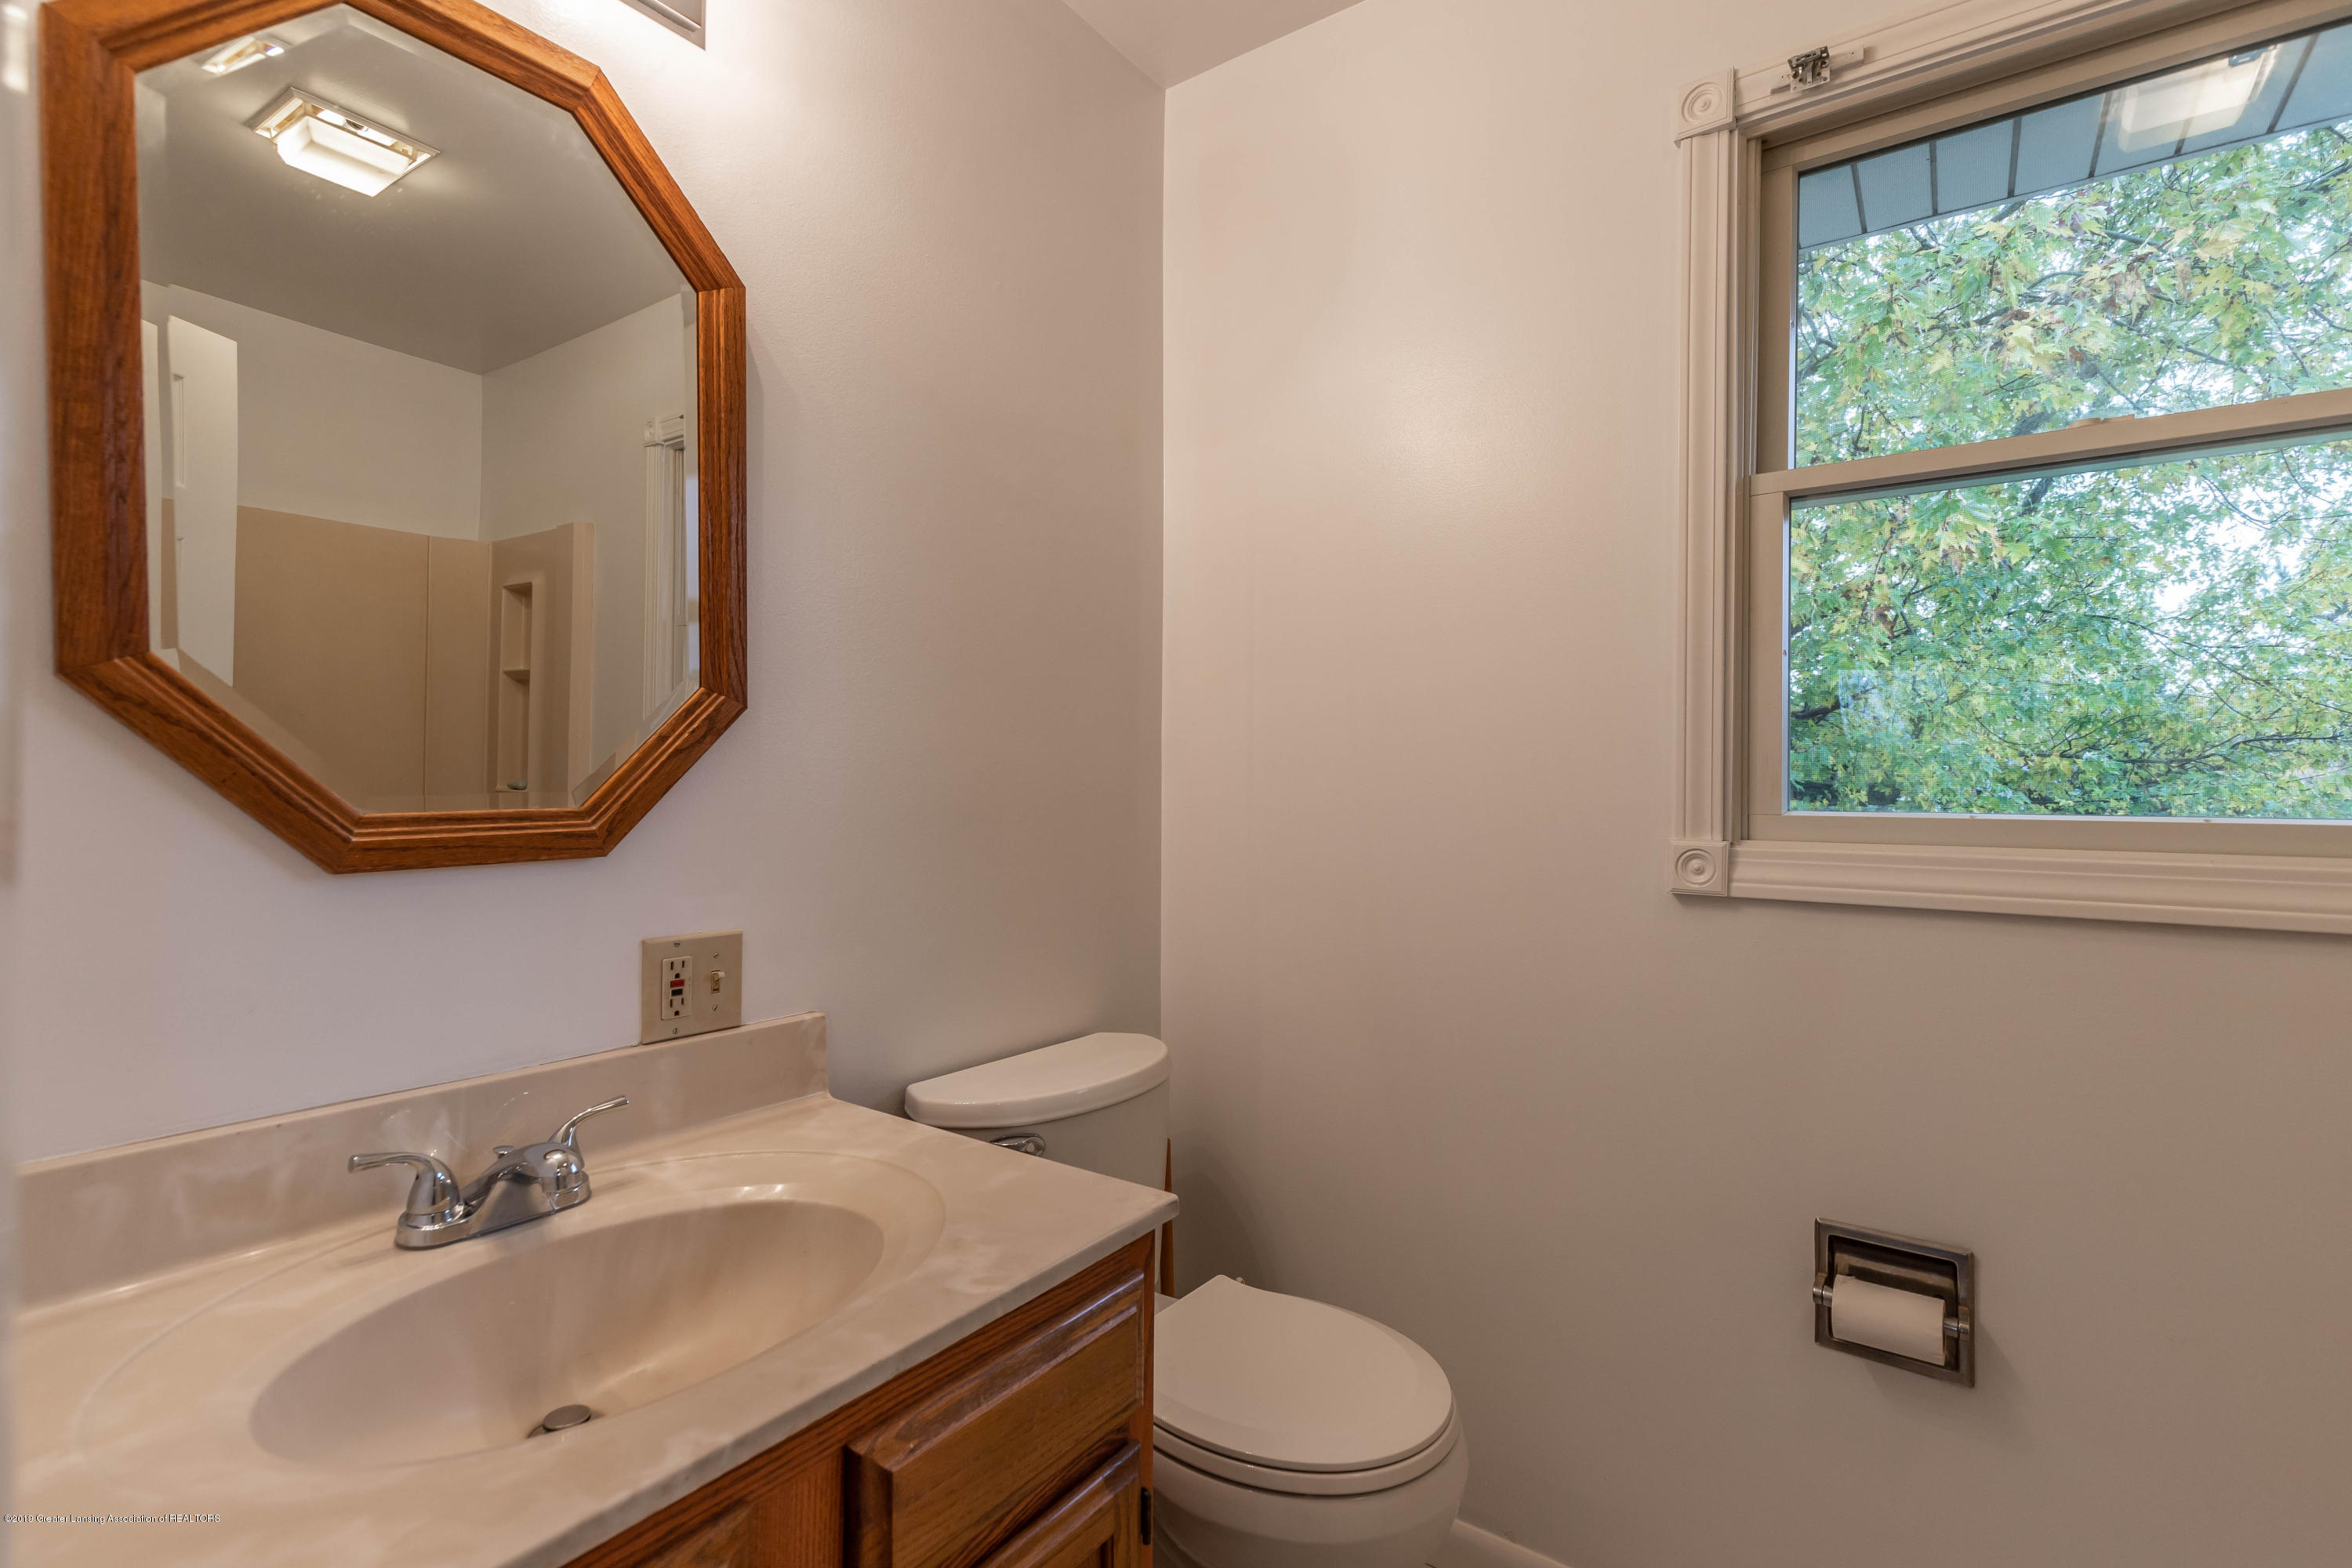 8436 E Spicerville Hwy - spicerbathus (1 of 1) - 21